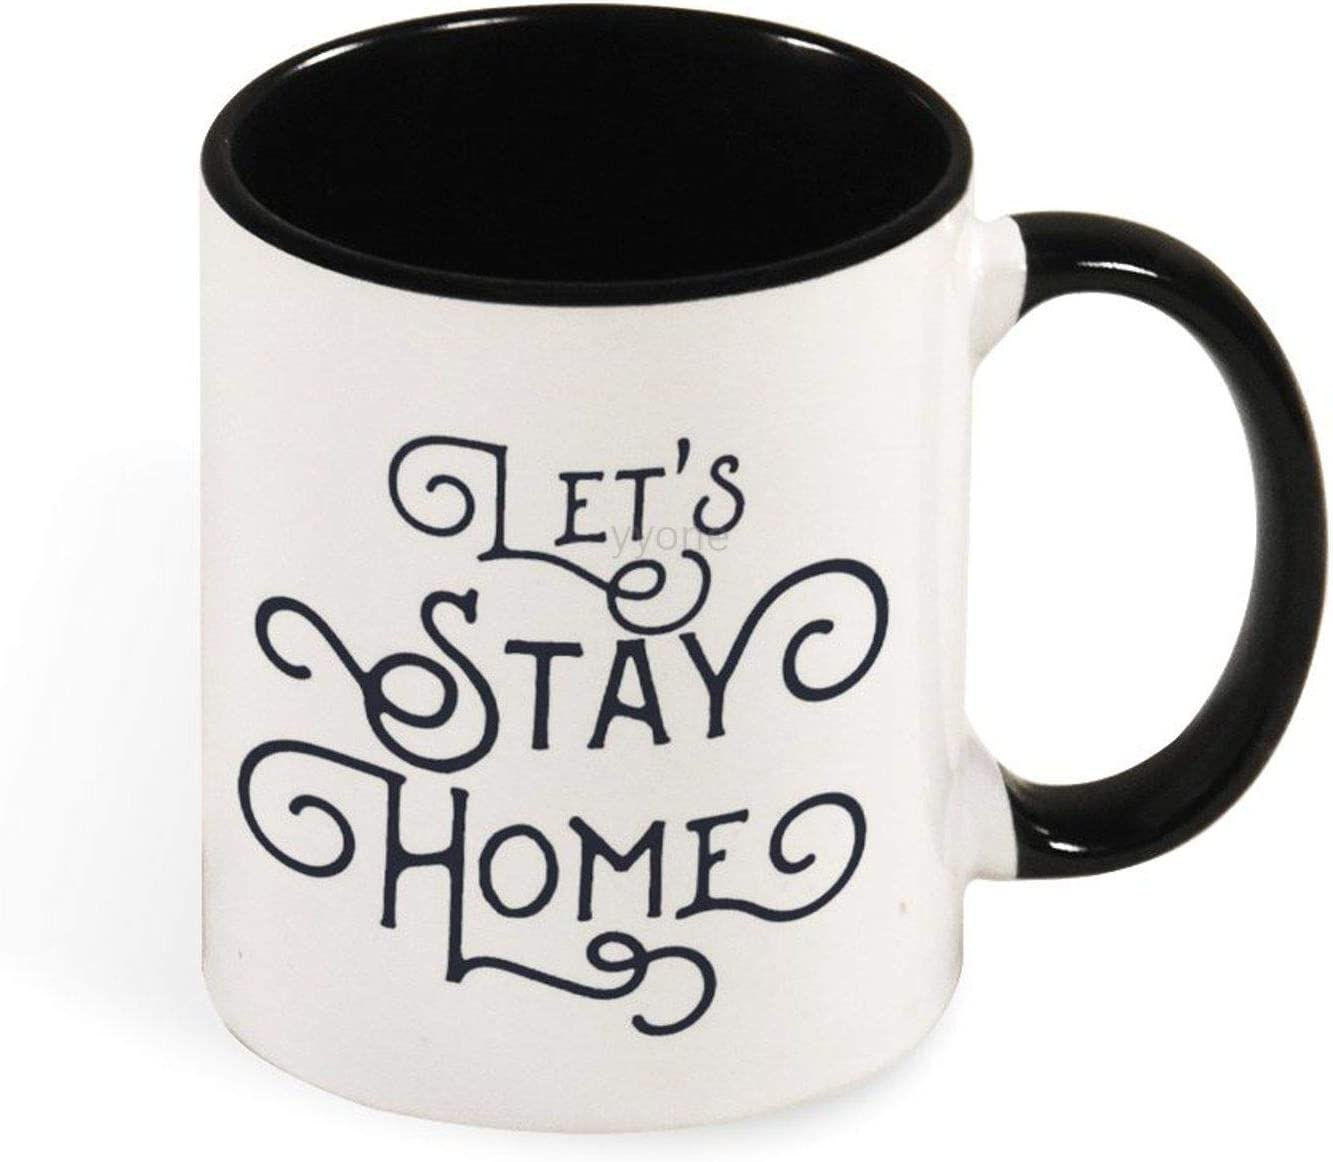 Ceramic Coffee Mug Tea Cup Lets Stay Home, Customised Cup Gift 11 OZ for Birthday, Wedding, Anniversary and for Special Moments